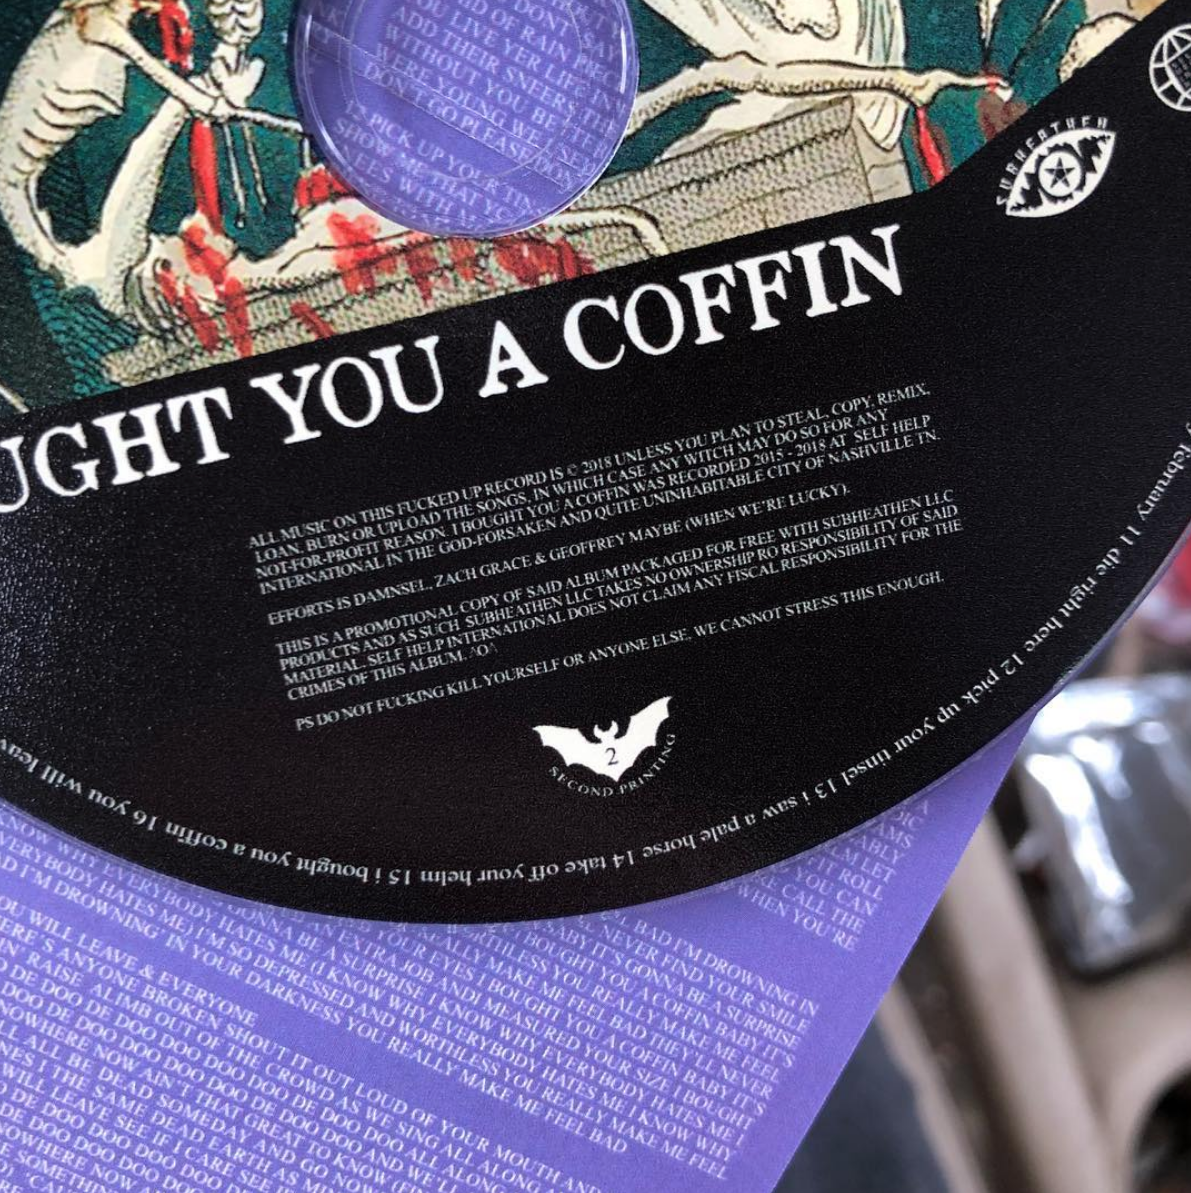 11.09.2018 second printing of IBYAC Promo CDs arrive. There's 300 of them in the world. I think.